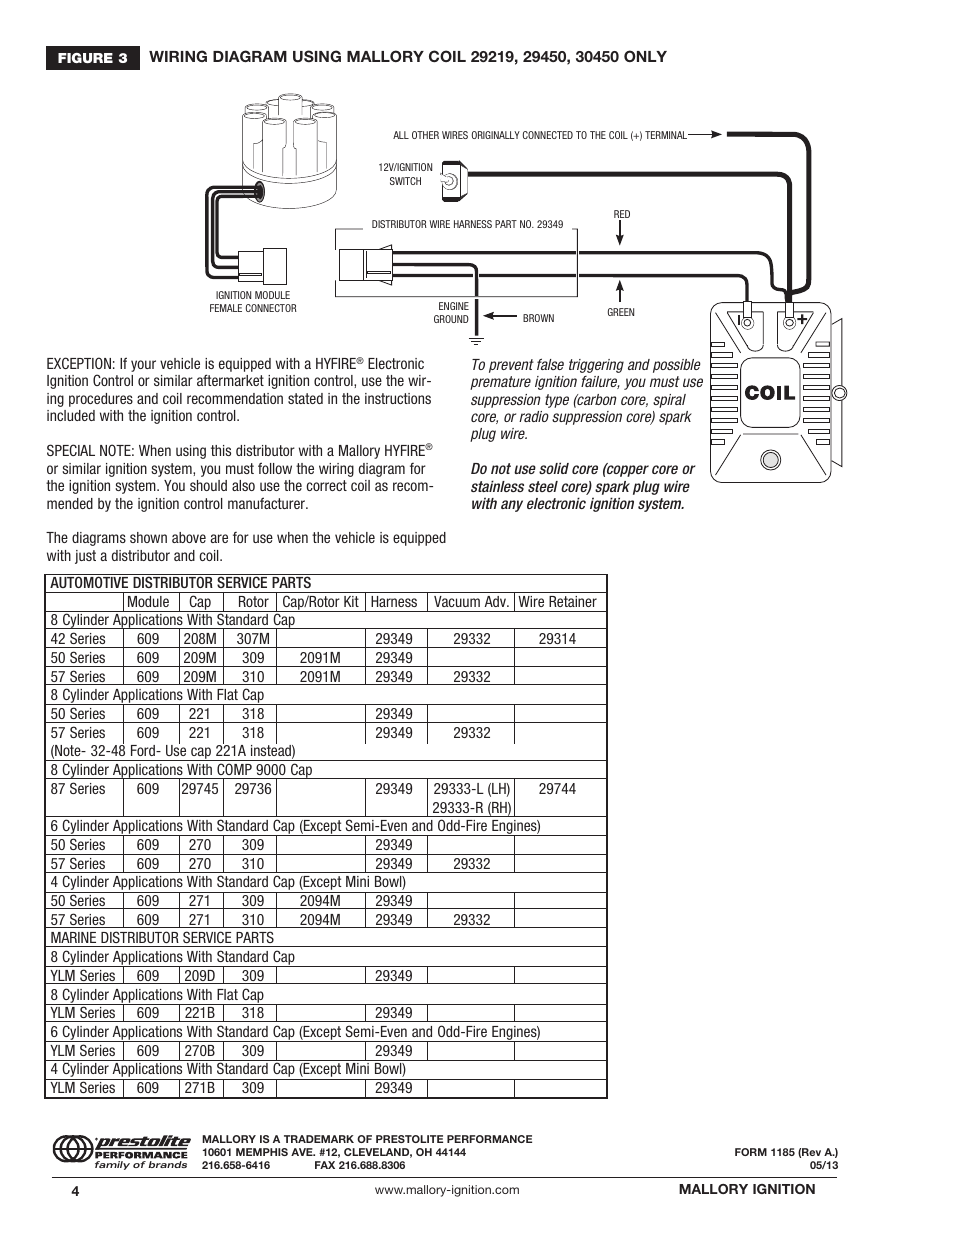 mallory magnetic breakerless distributor wiring diagram: nice mallory  ignition systems wiring diagrams pictures inspiration ,